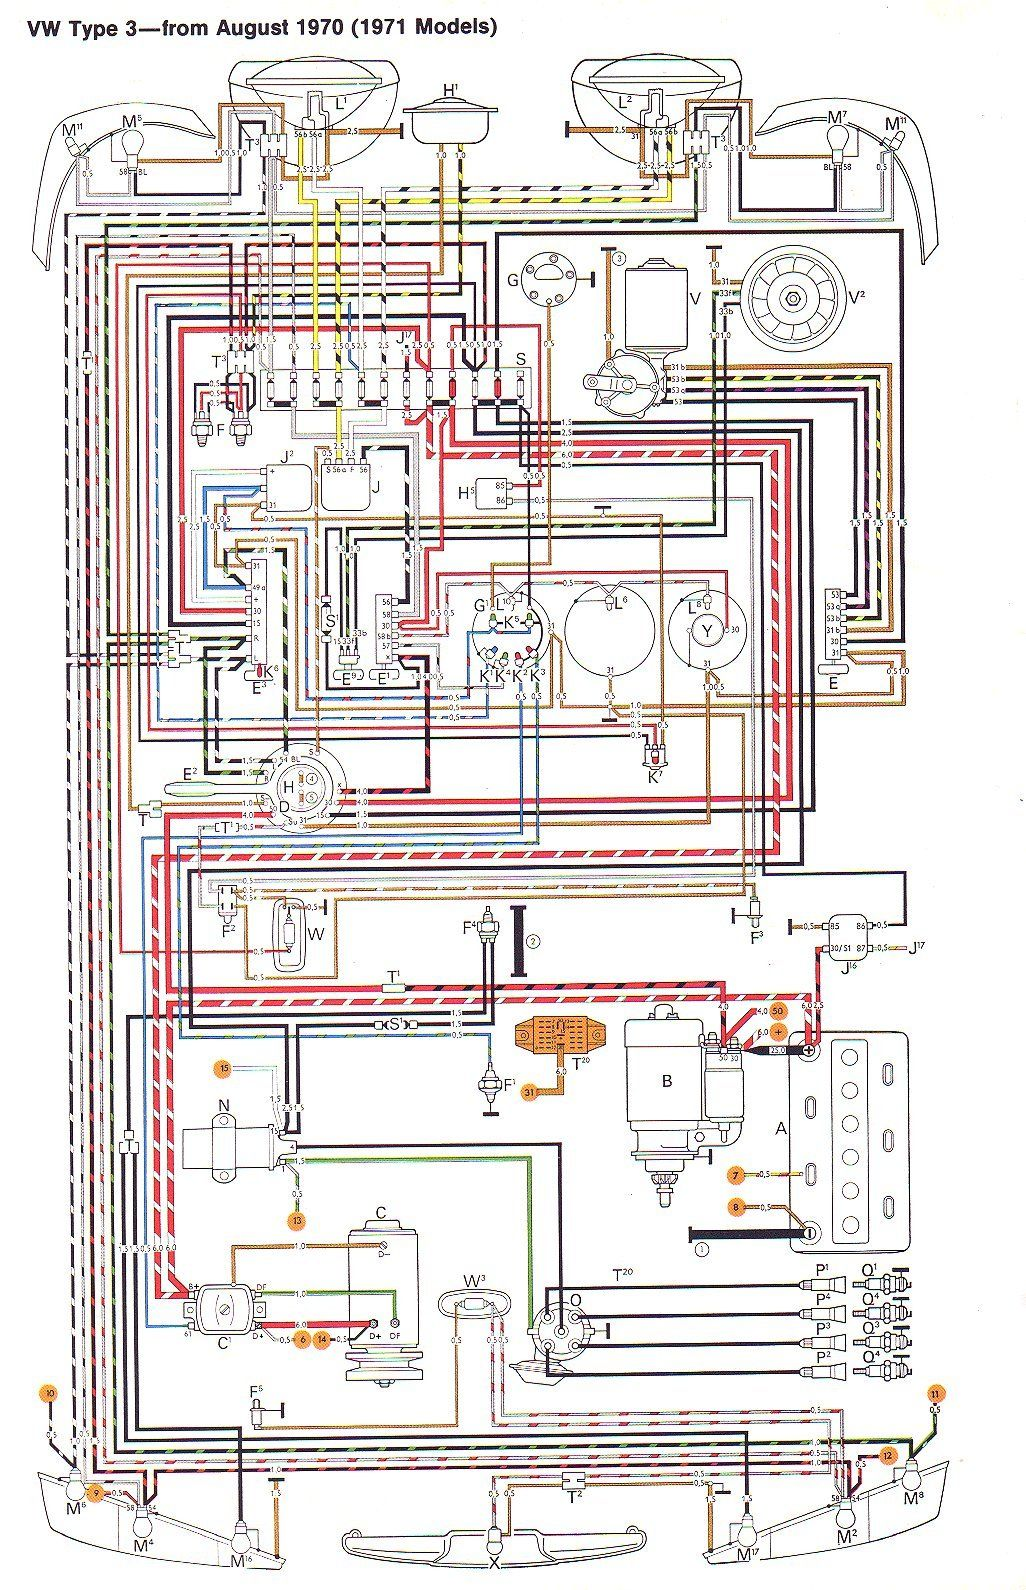 e0db58370f79a63d02d45f00cf63f44a 71 vw t3 wiring diagram ruthie pinterest volkswagen, engine vw engine wiring diagram at suagrazia.org